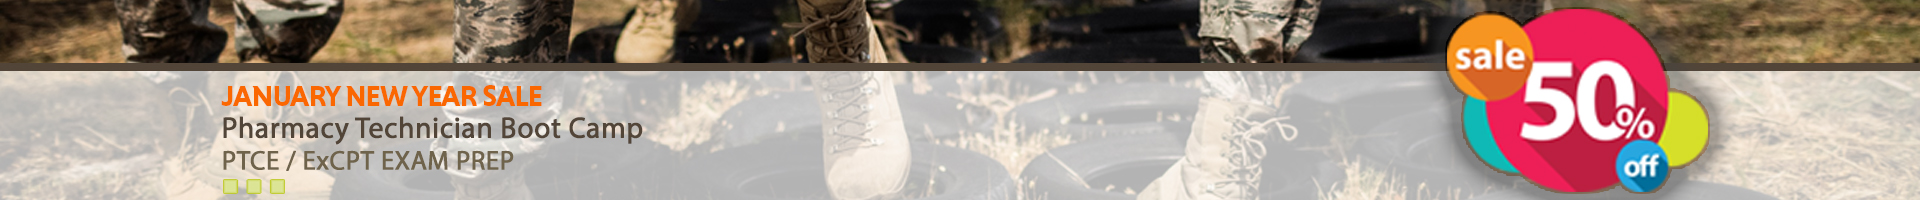 Boot Camp Jan Sale 50% Off